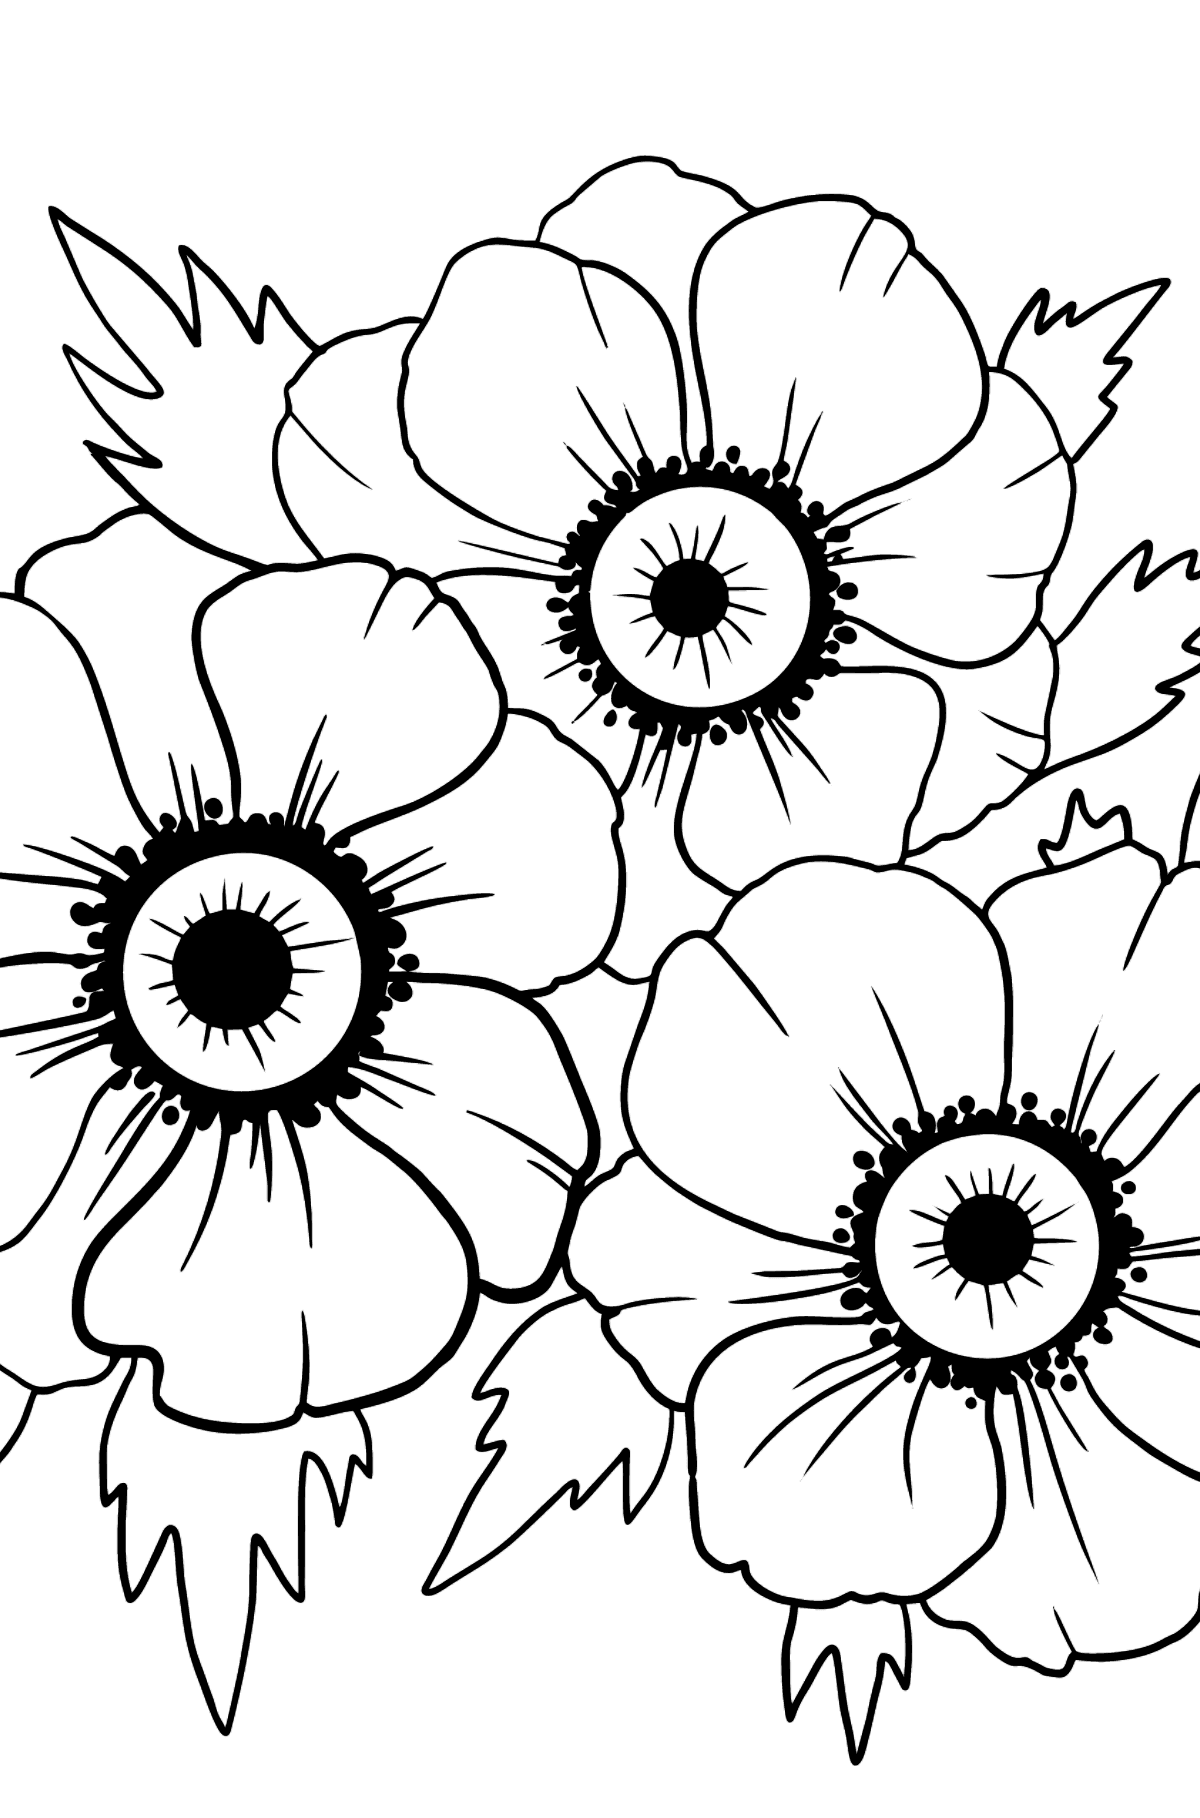 Coloring Page with big flower - A Red and Pink Anemone Coronaria - Coloring Pages for Kids